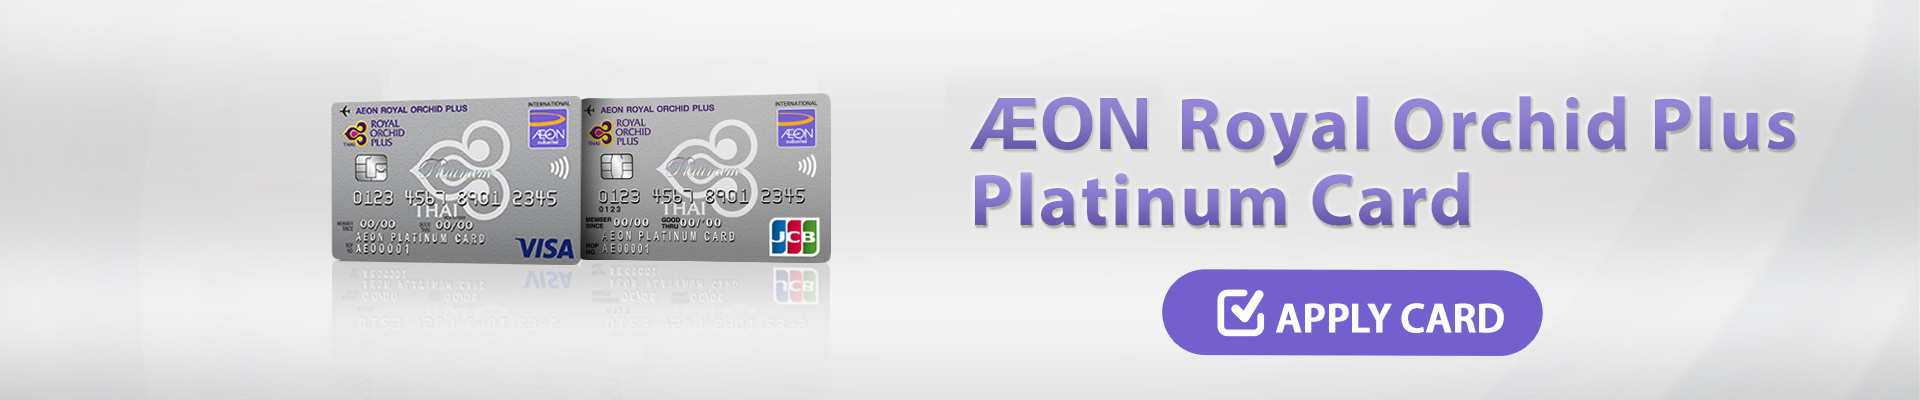 AEON Royal Orchid Plus Platinum Card